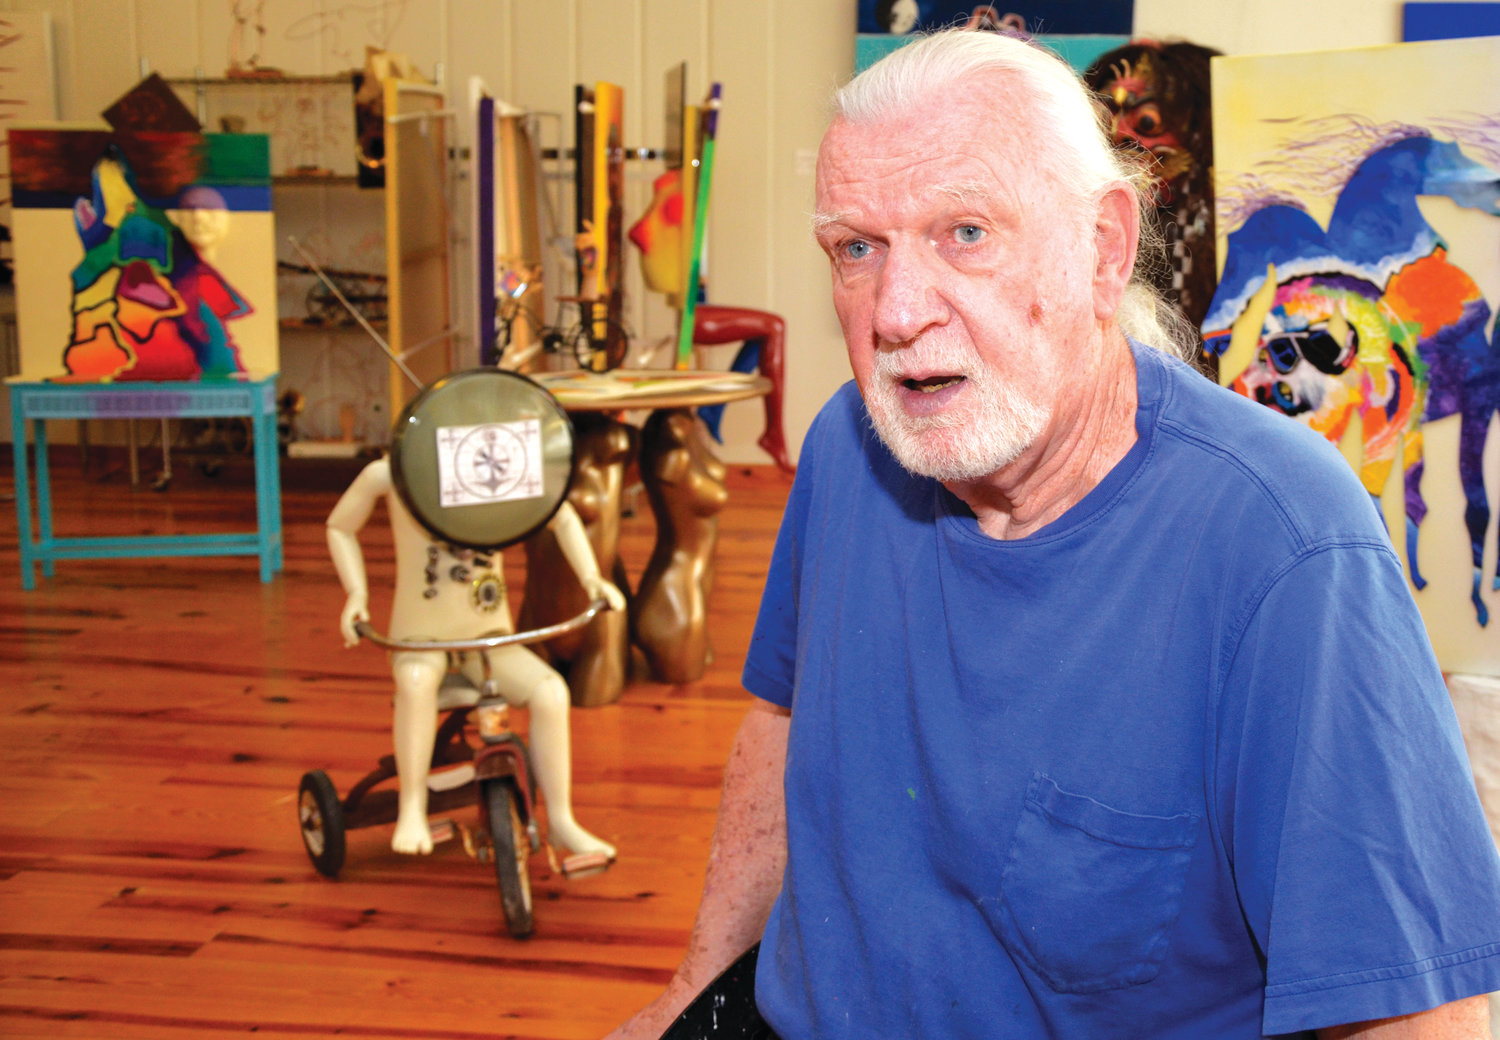 He is surrounded by the creations that he has made, but Roger Person doesn't continually tread old ground artistically. He creates new possibilities with the items that he finds or have been brought to him.